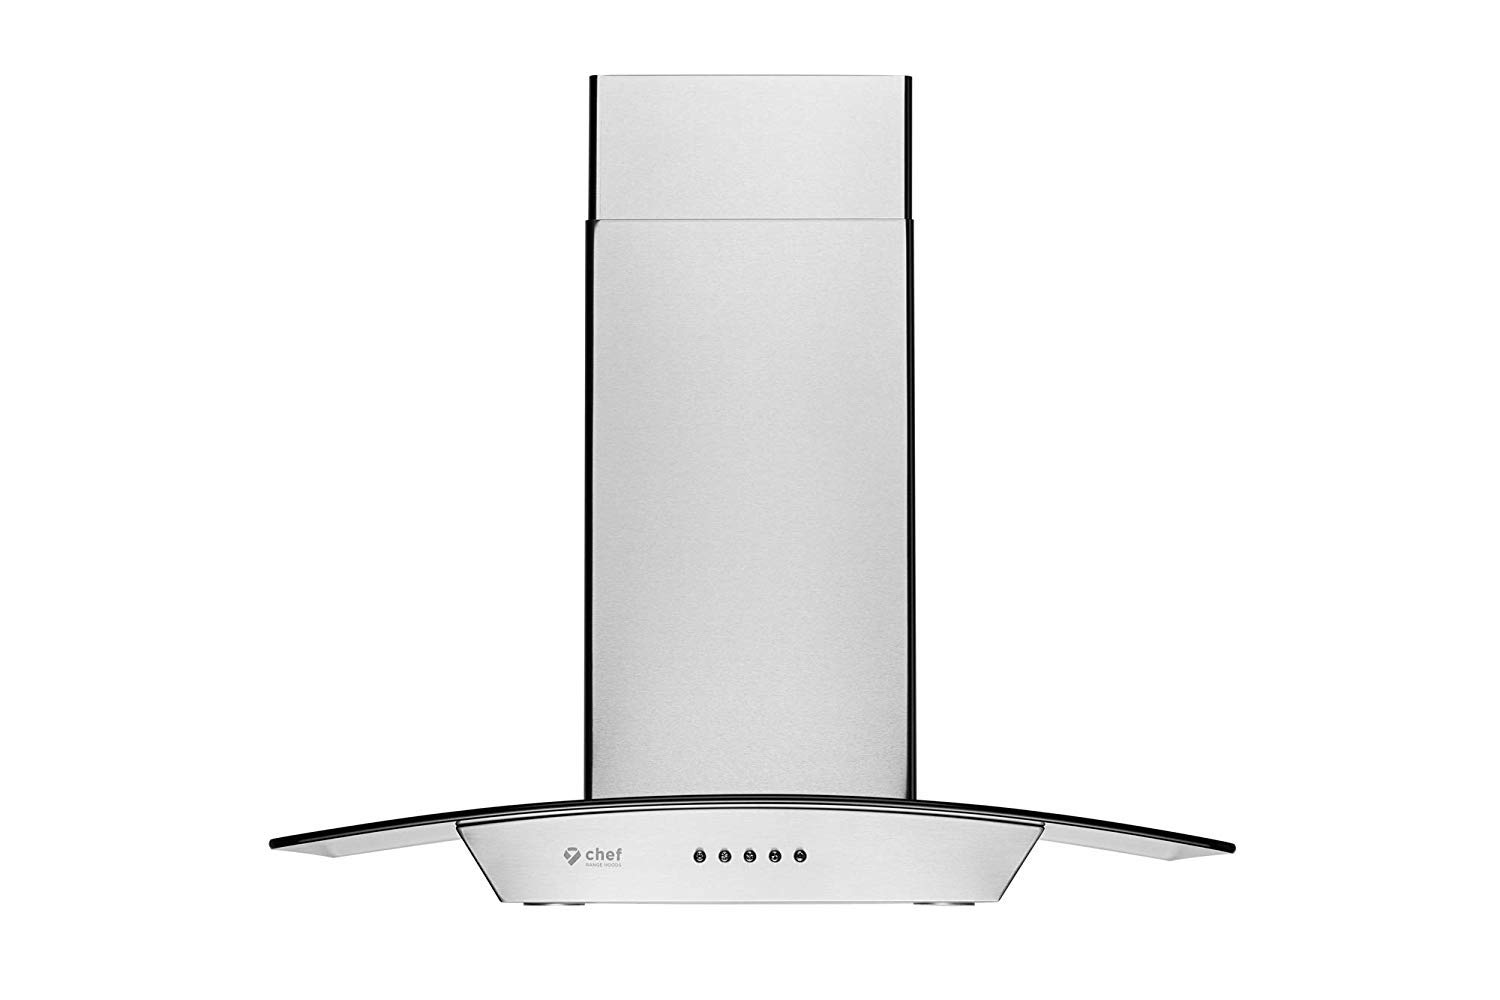 "Chef Range Hood WM-630 30"" Wall Mount Range Hood 